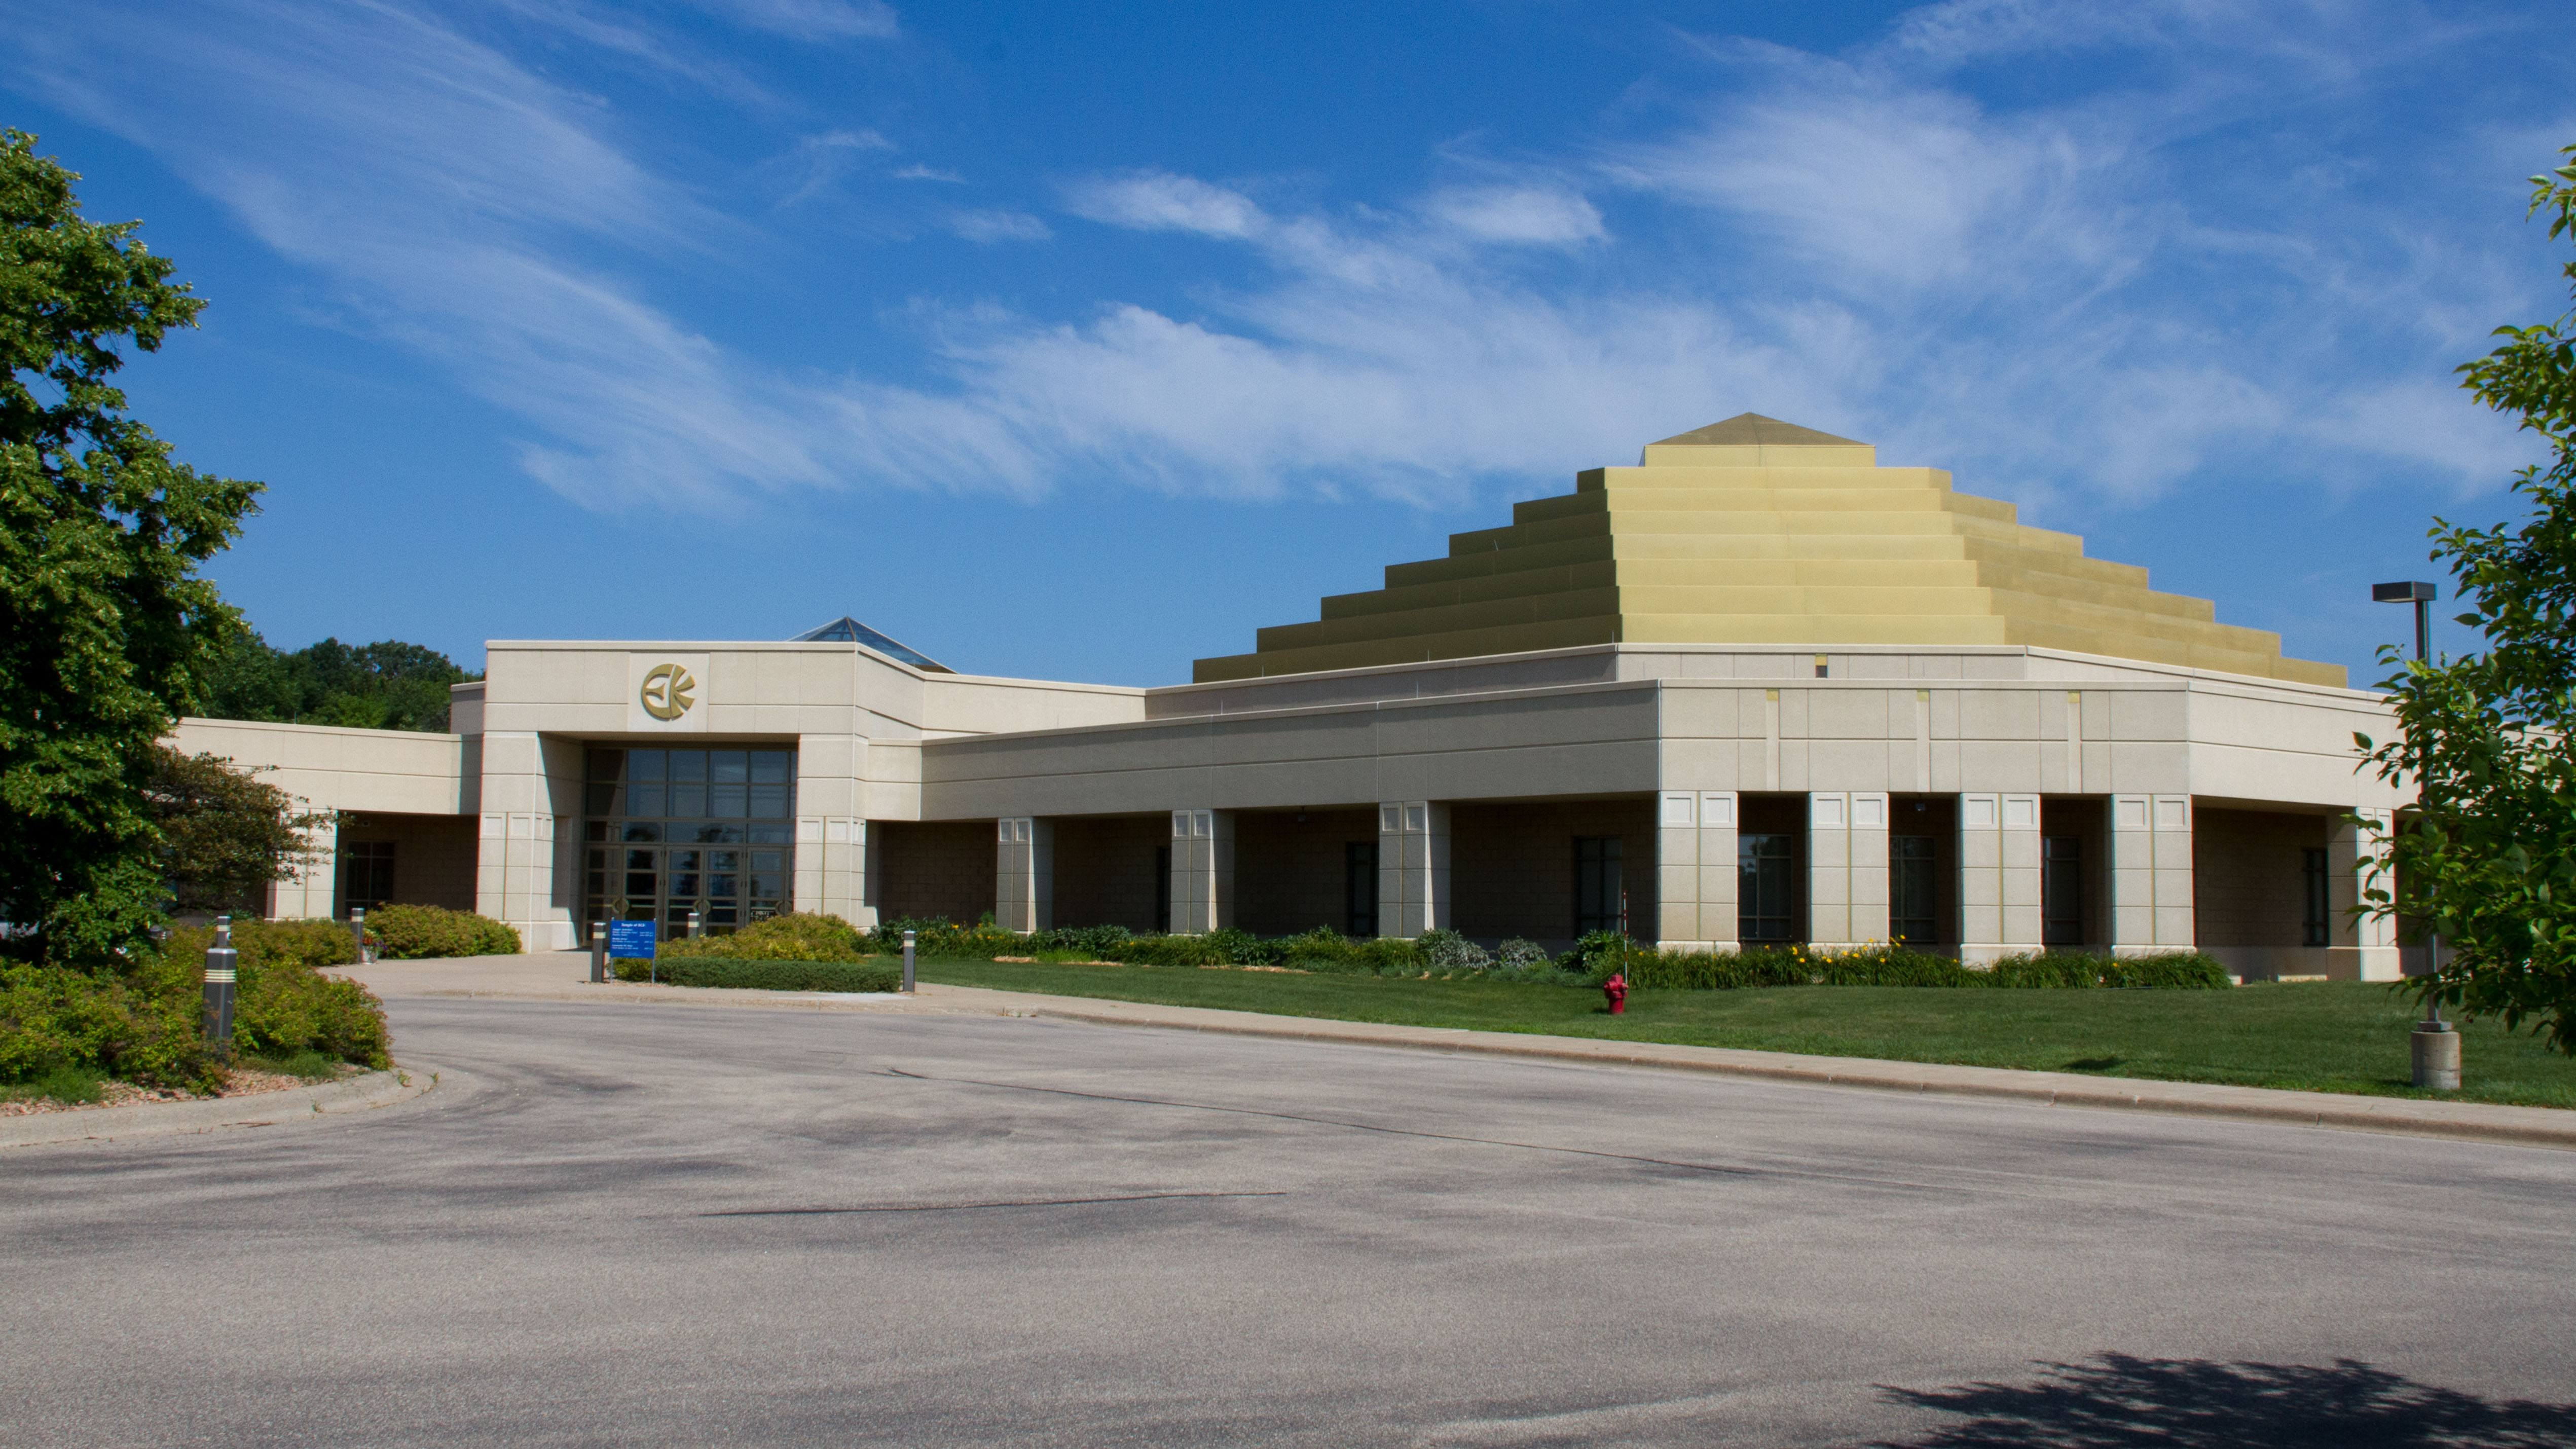 Eckankar cult headquarters